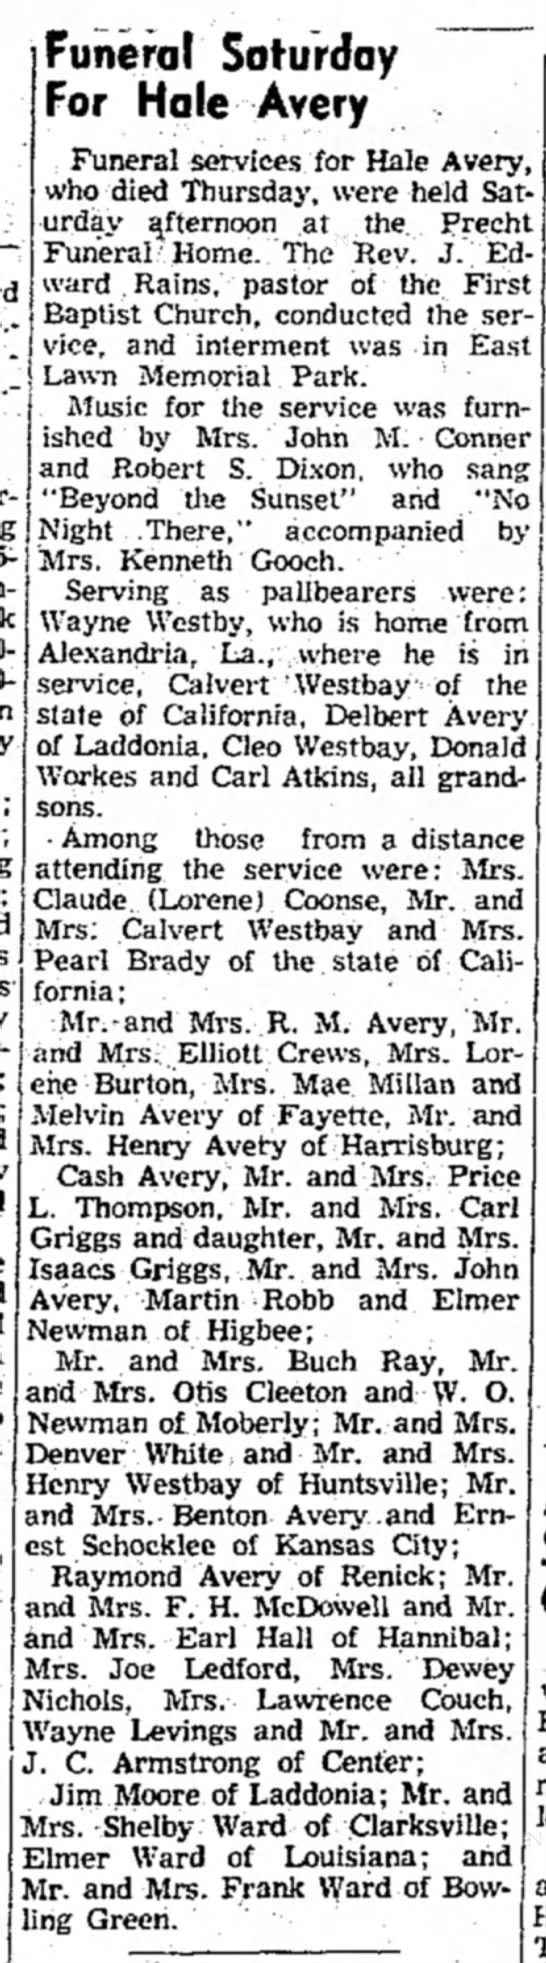 """""""Funeral Saturday For Hale Avery,"""" Mexico (Missouri) Ledger, 17 May 1954, p. 6, col. 3. -"""